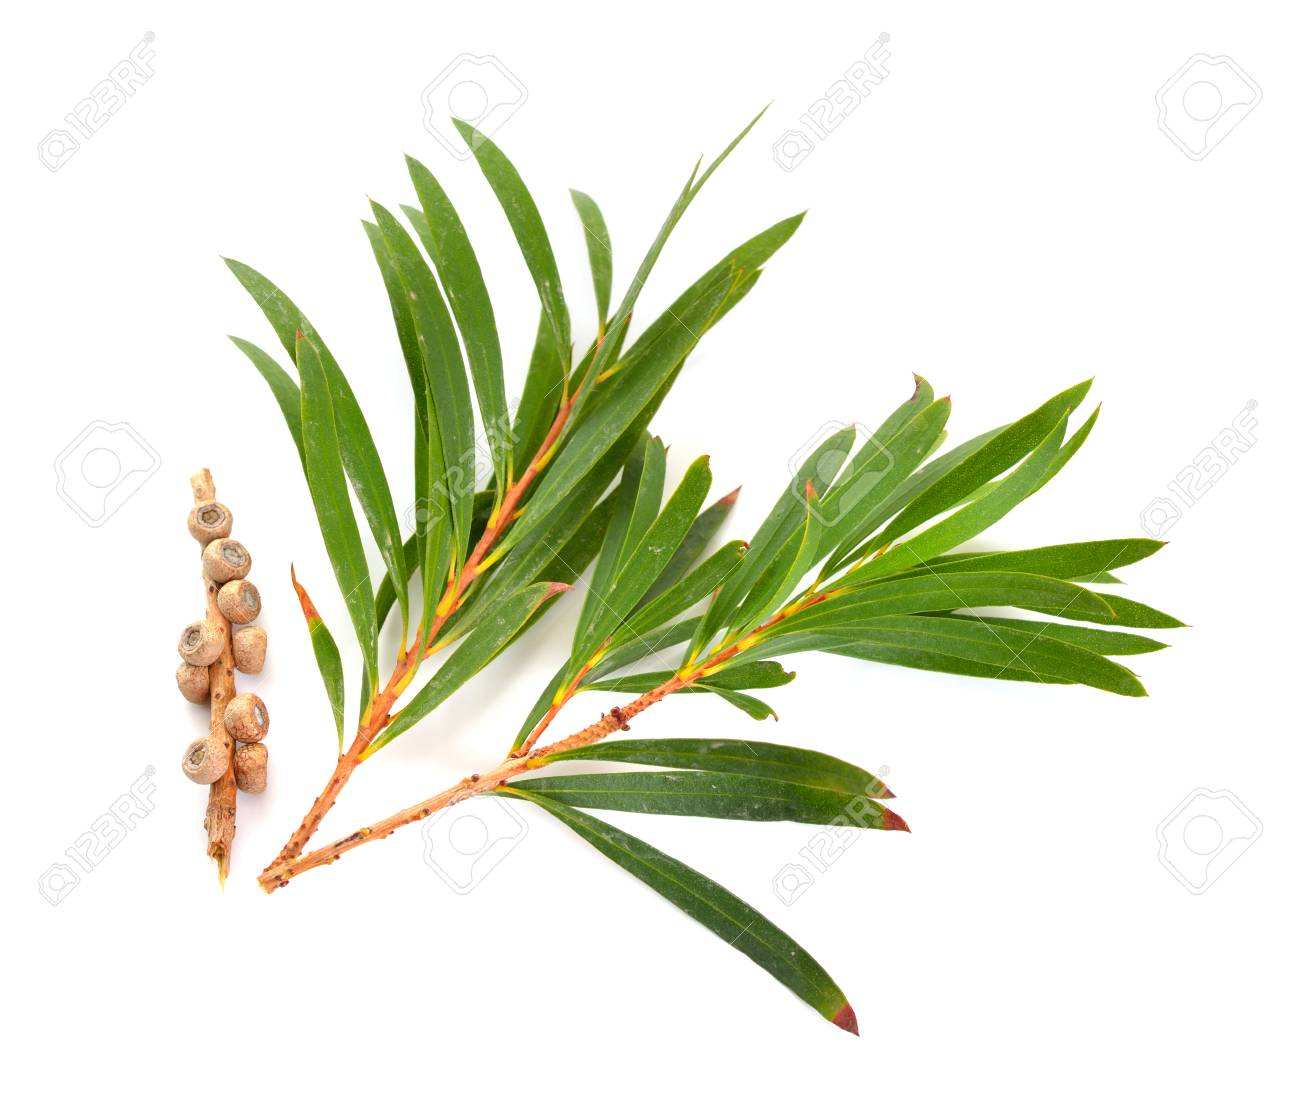 Melaleluca (tea tree) twigs with leaves and seeds. Isolated on white background. - 91031709